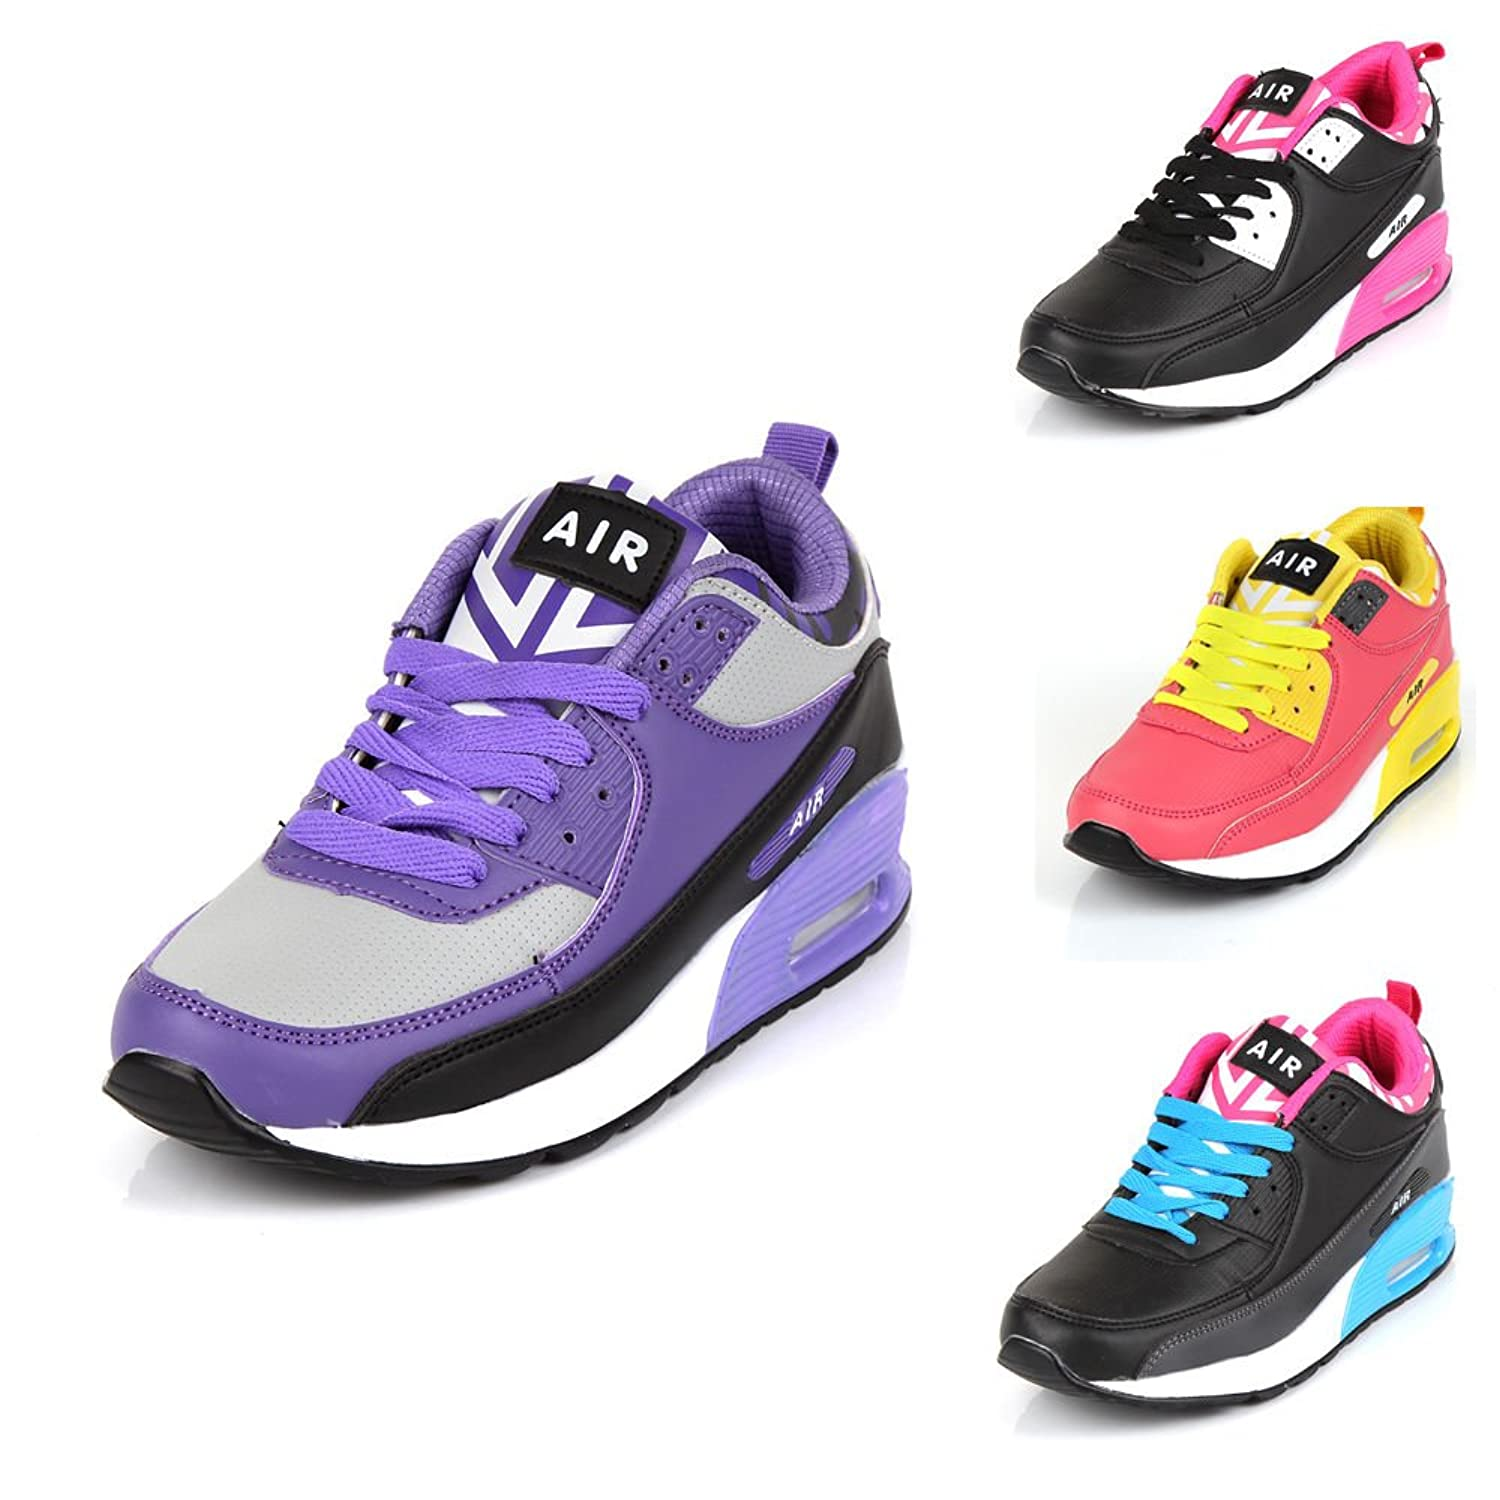 Ladies Running Trainers Air Shock Absorbing Fitness Gym Sports Shoes Size  UK 2-7: Amazon.co.uk: Shoes & Bags